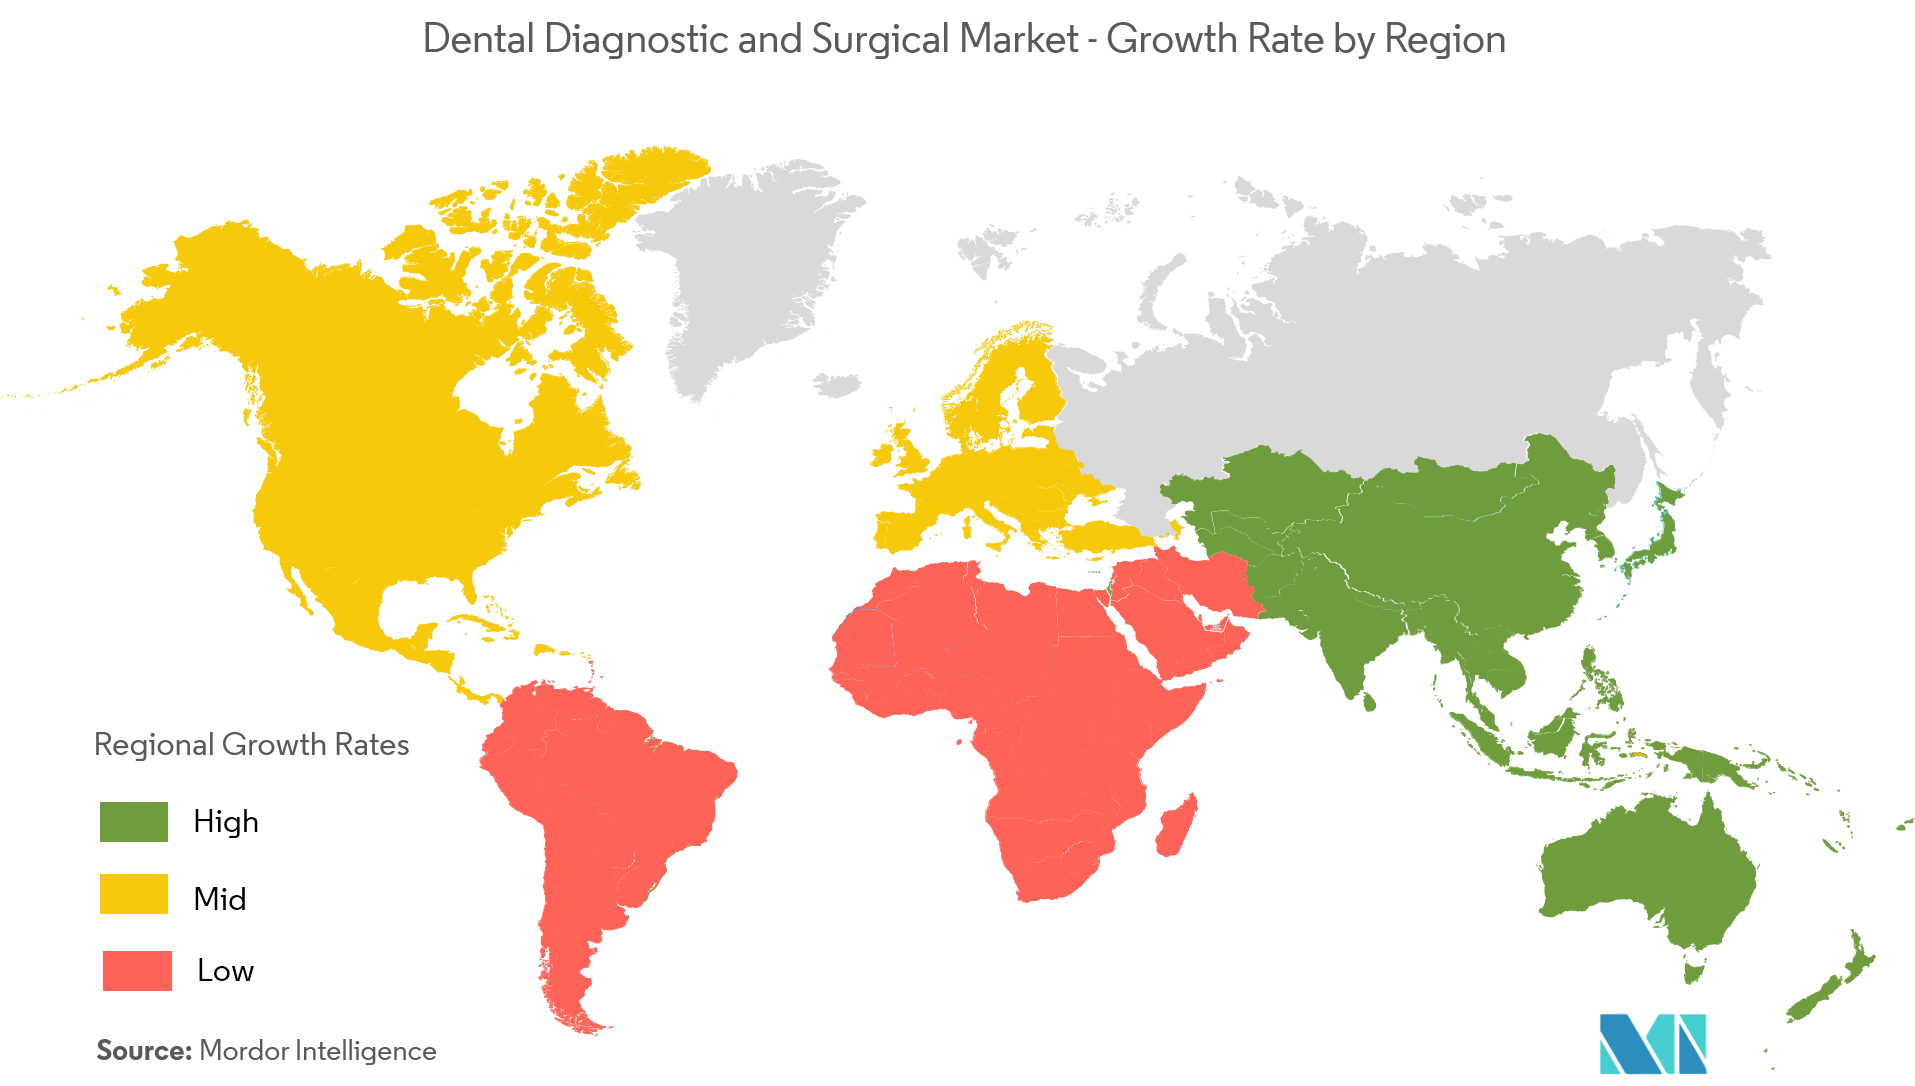 Dental Diagnostic and Surgical Market Growth Rate By Region